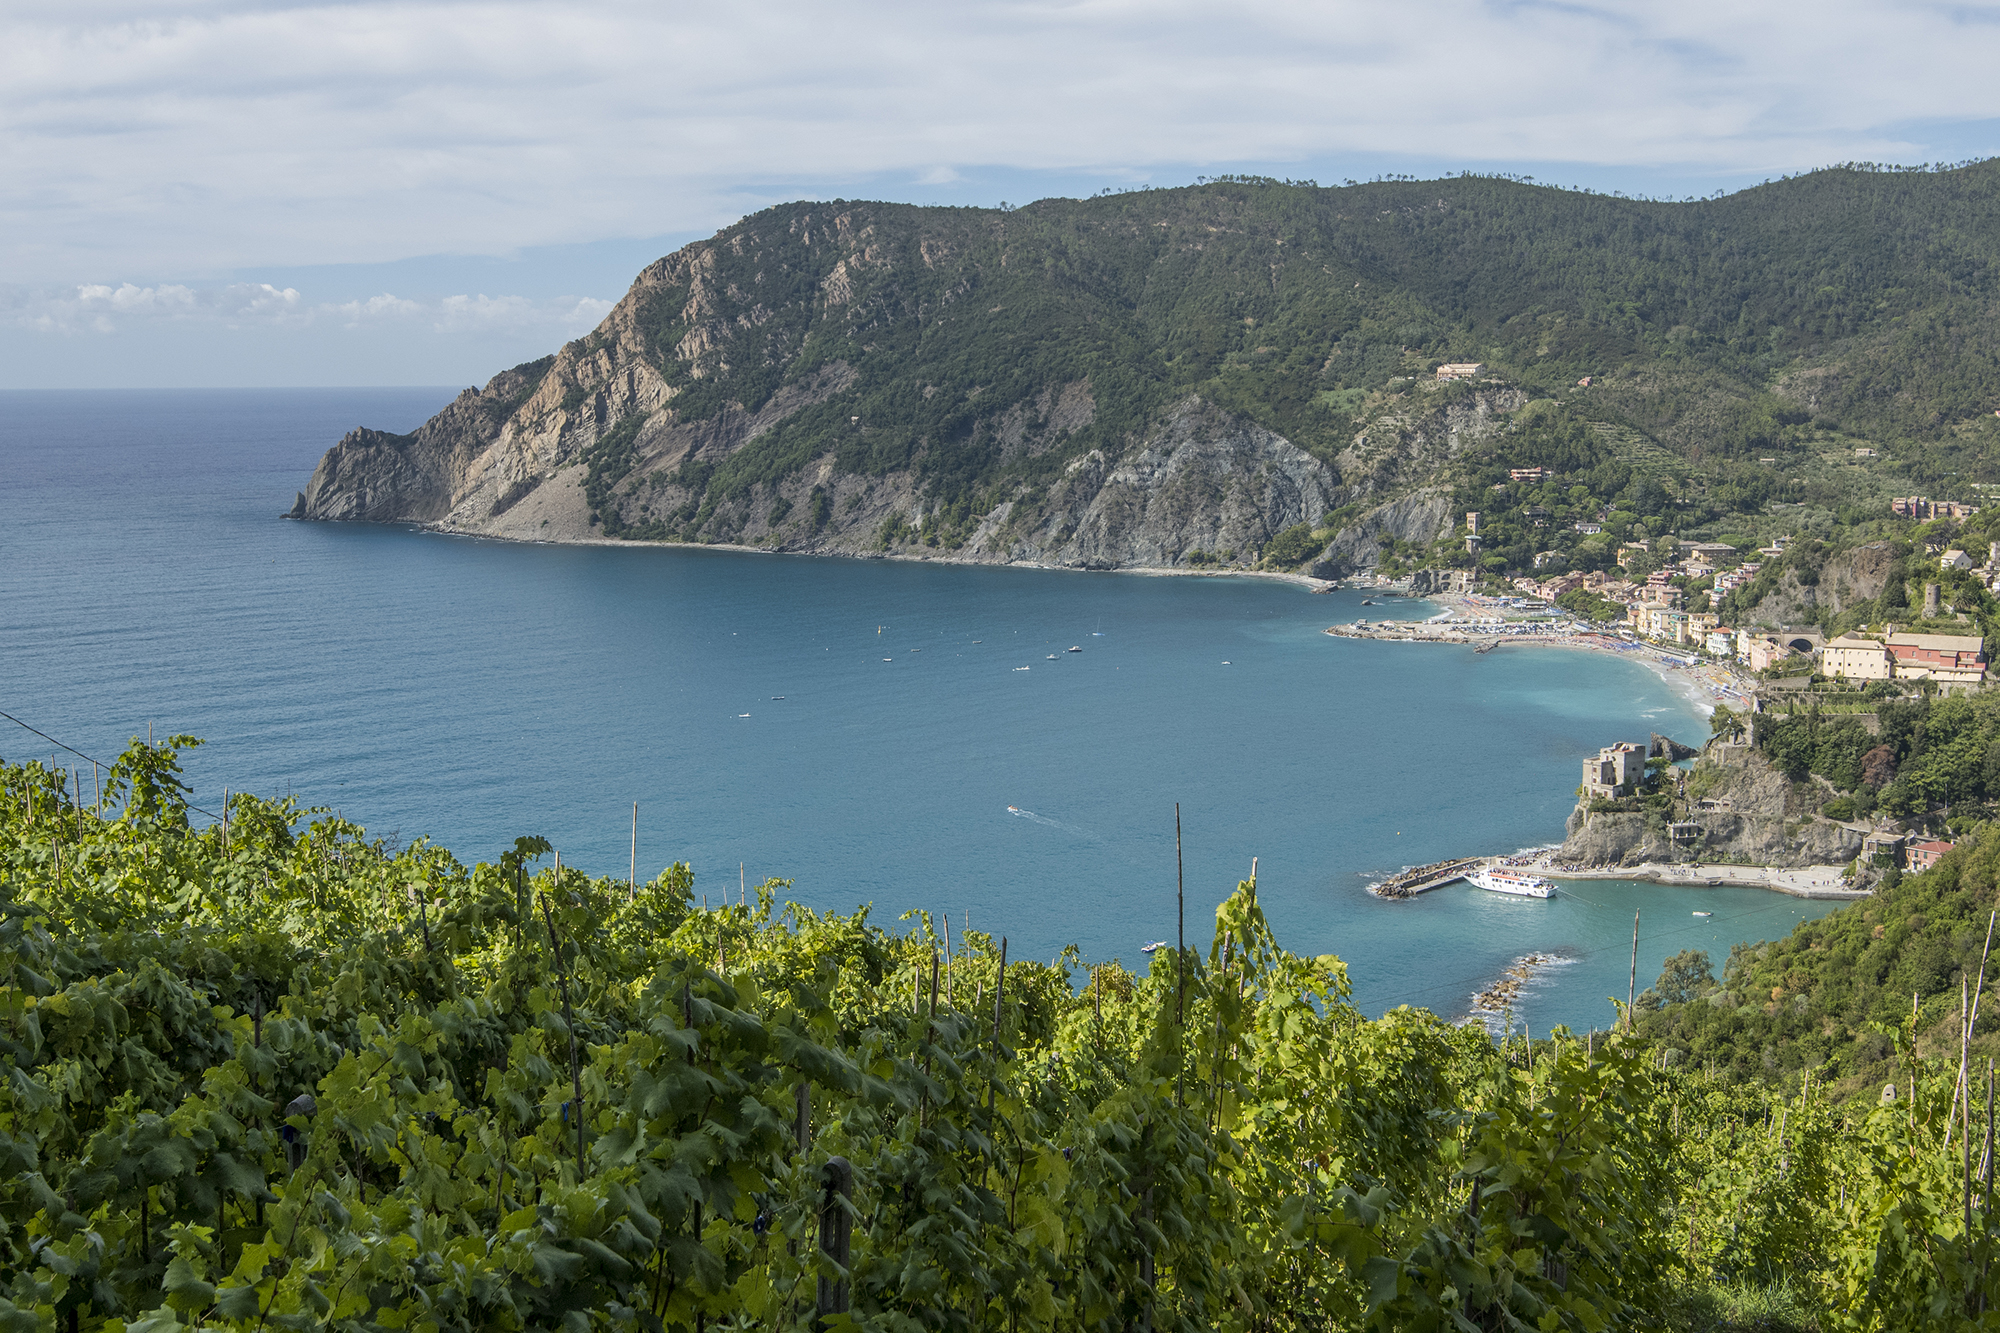 monterosso overlook from vinyard